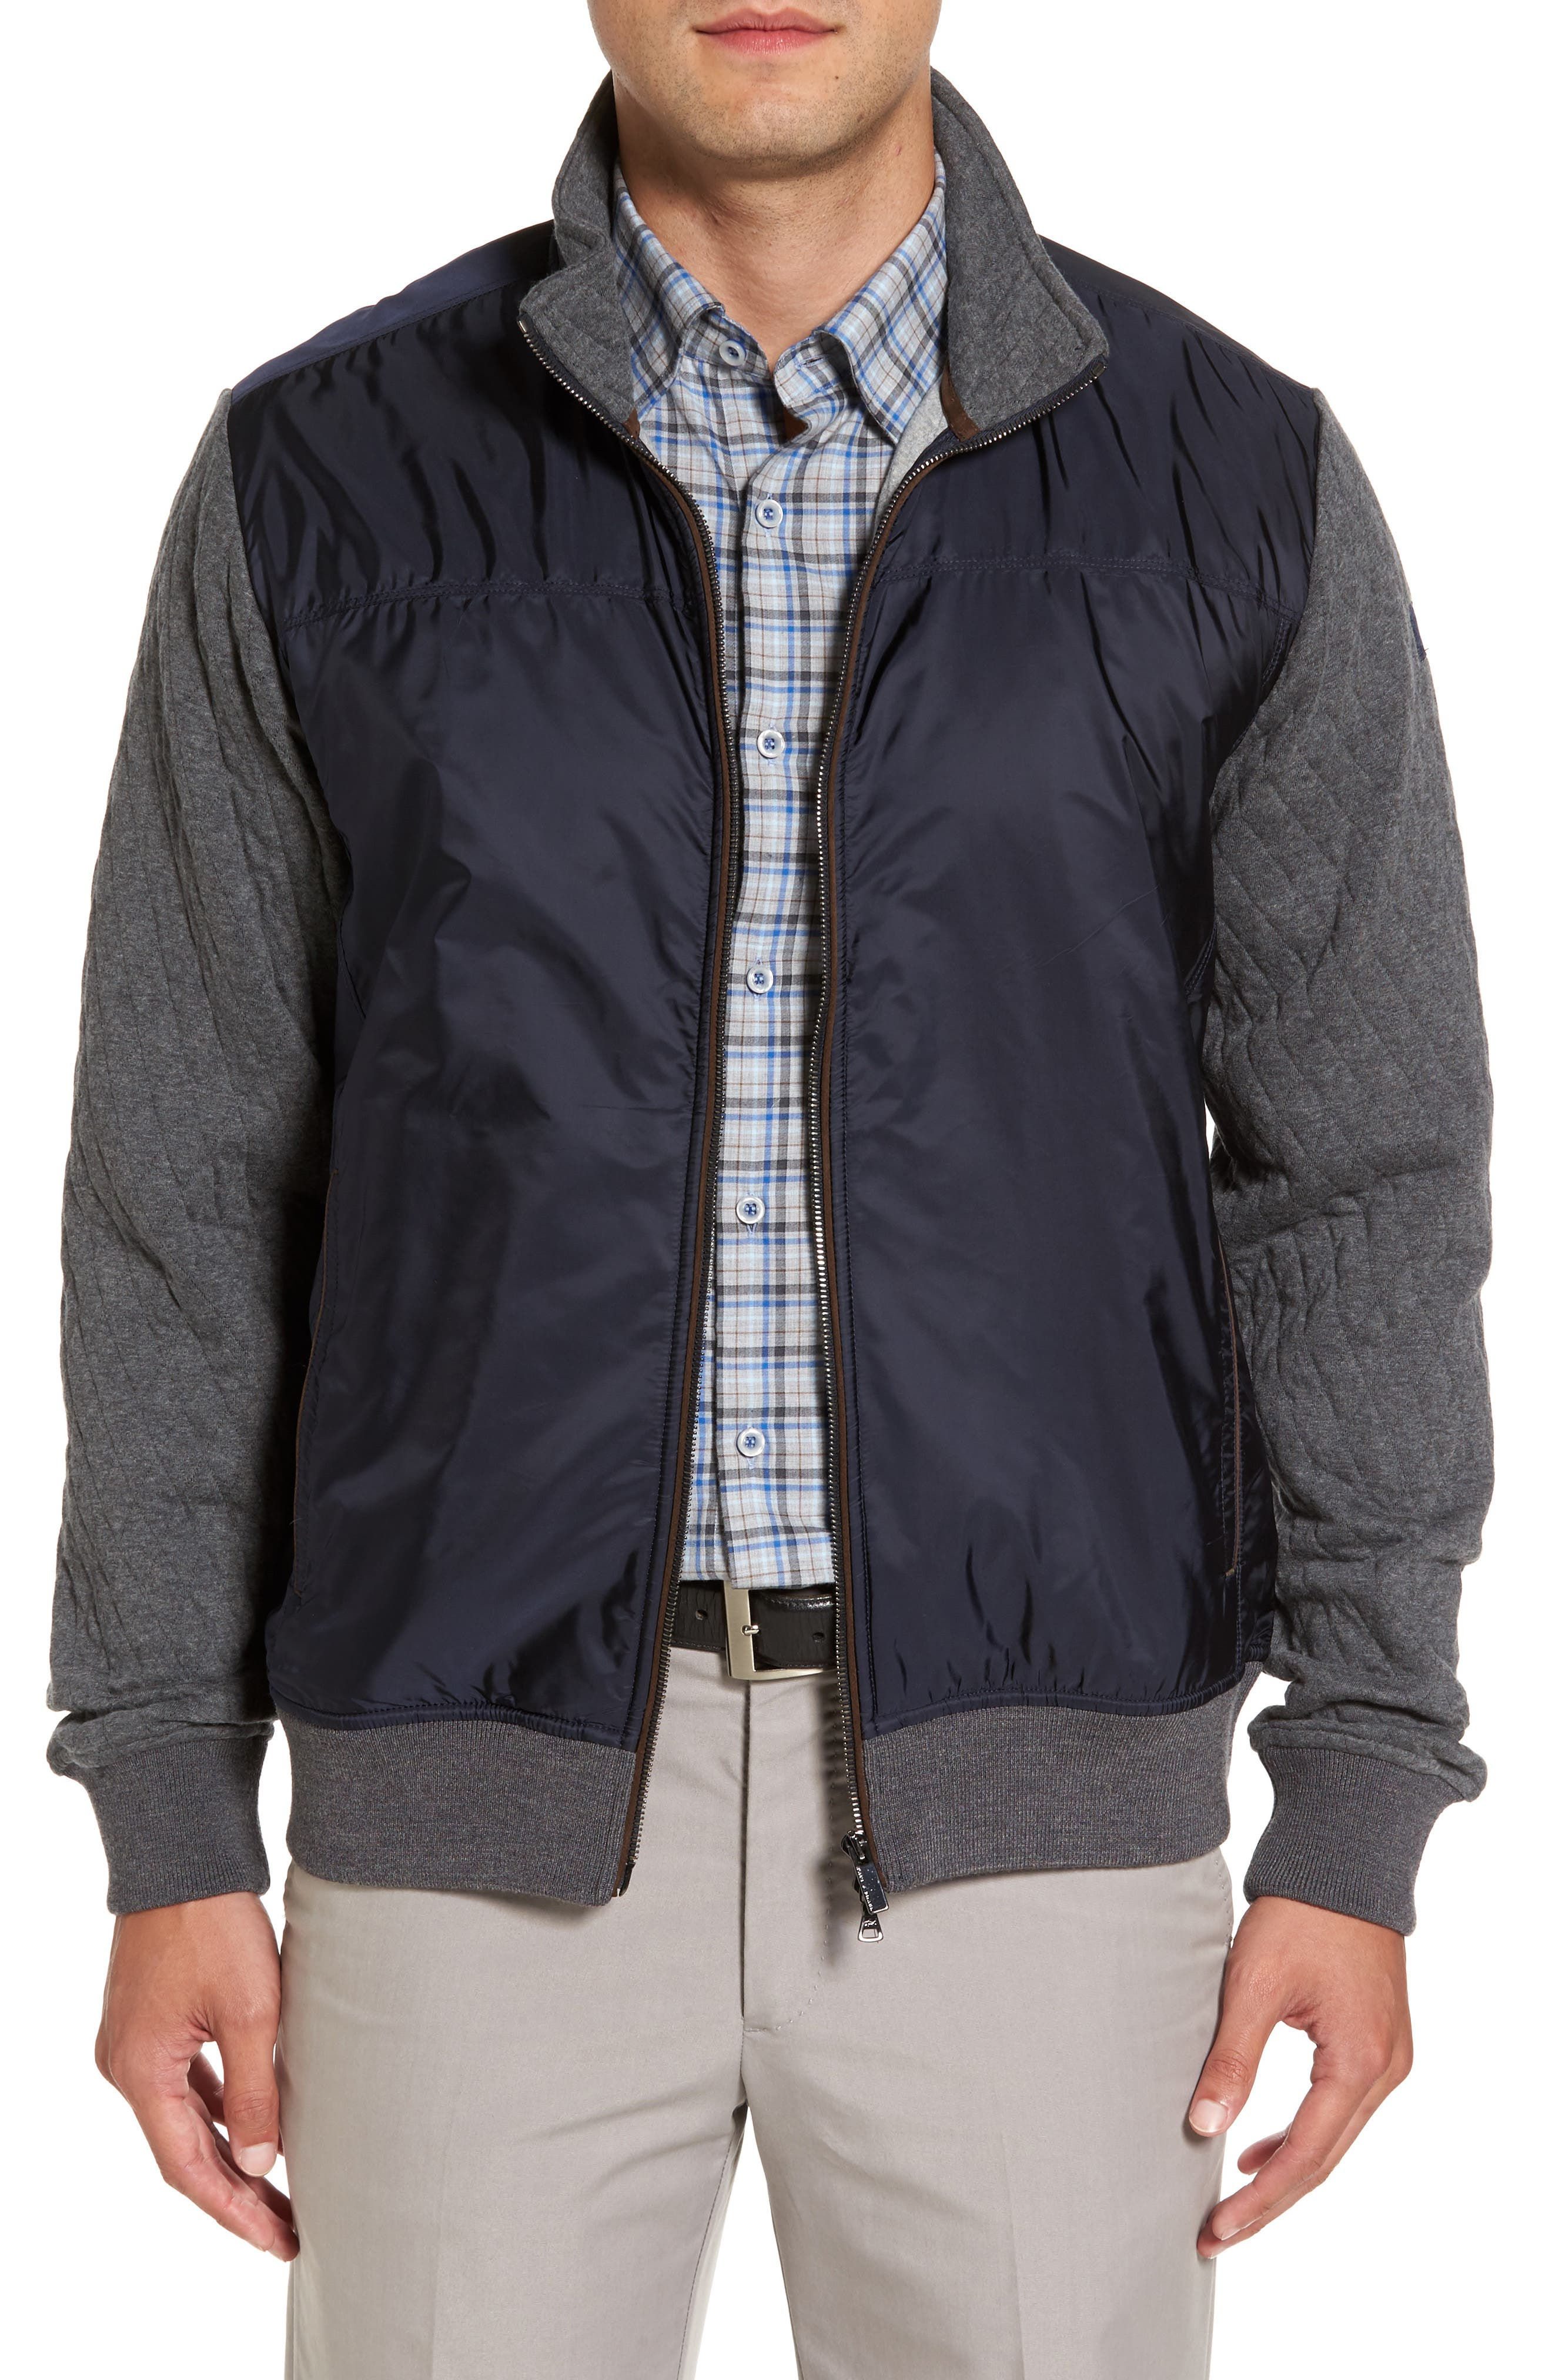 Paul&Shark Colorblock Mixed Media Zip Front Jacket,                             Main thumbnail 1, color,                             Navy / Grey